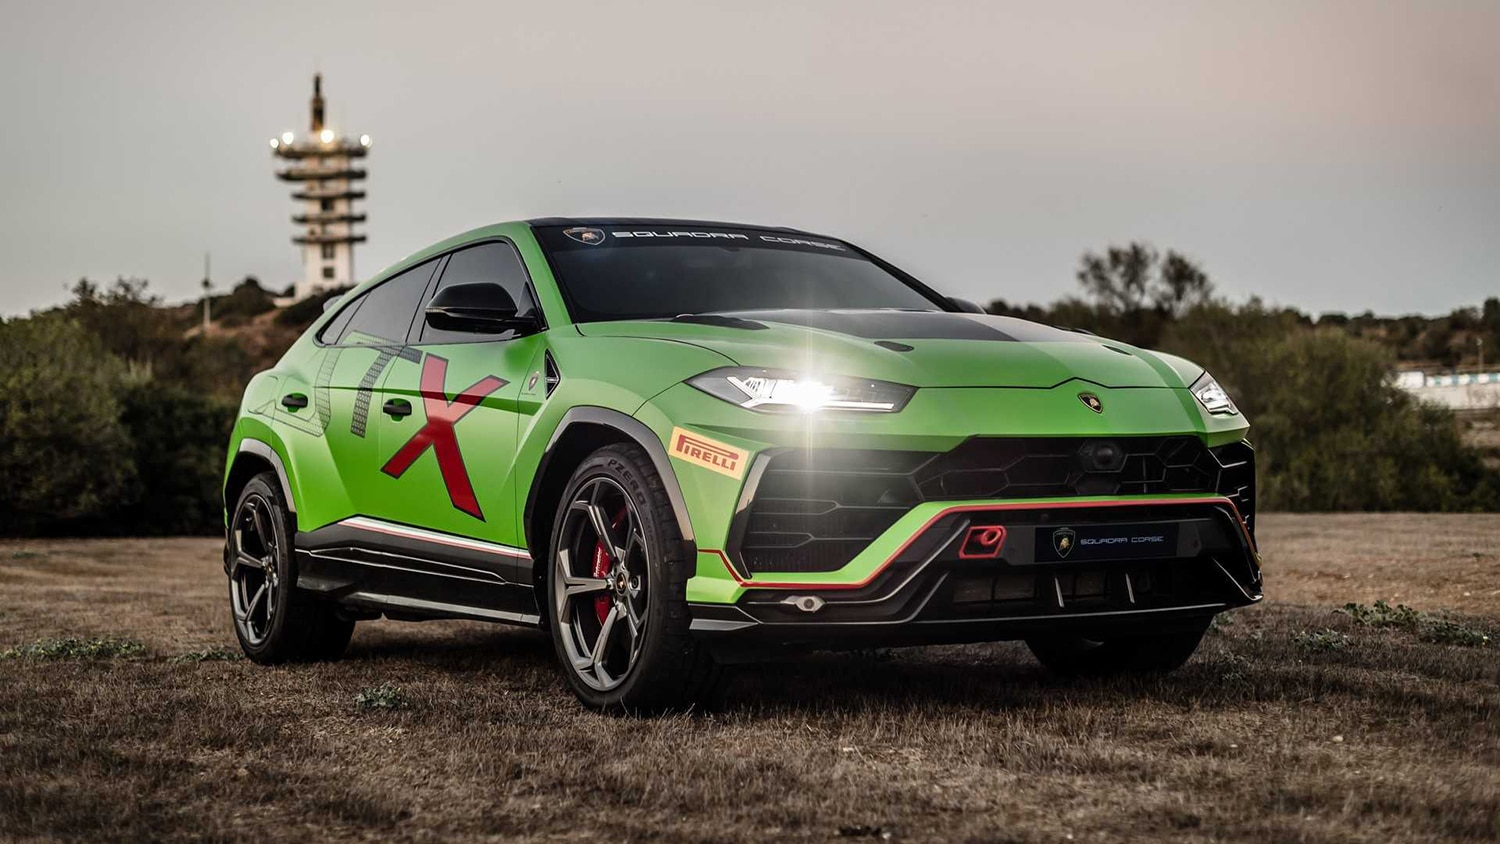 The new Lamborghini Urus ST-X will arrive this year